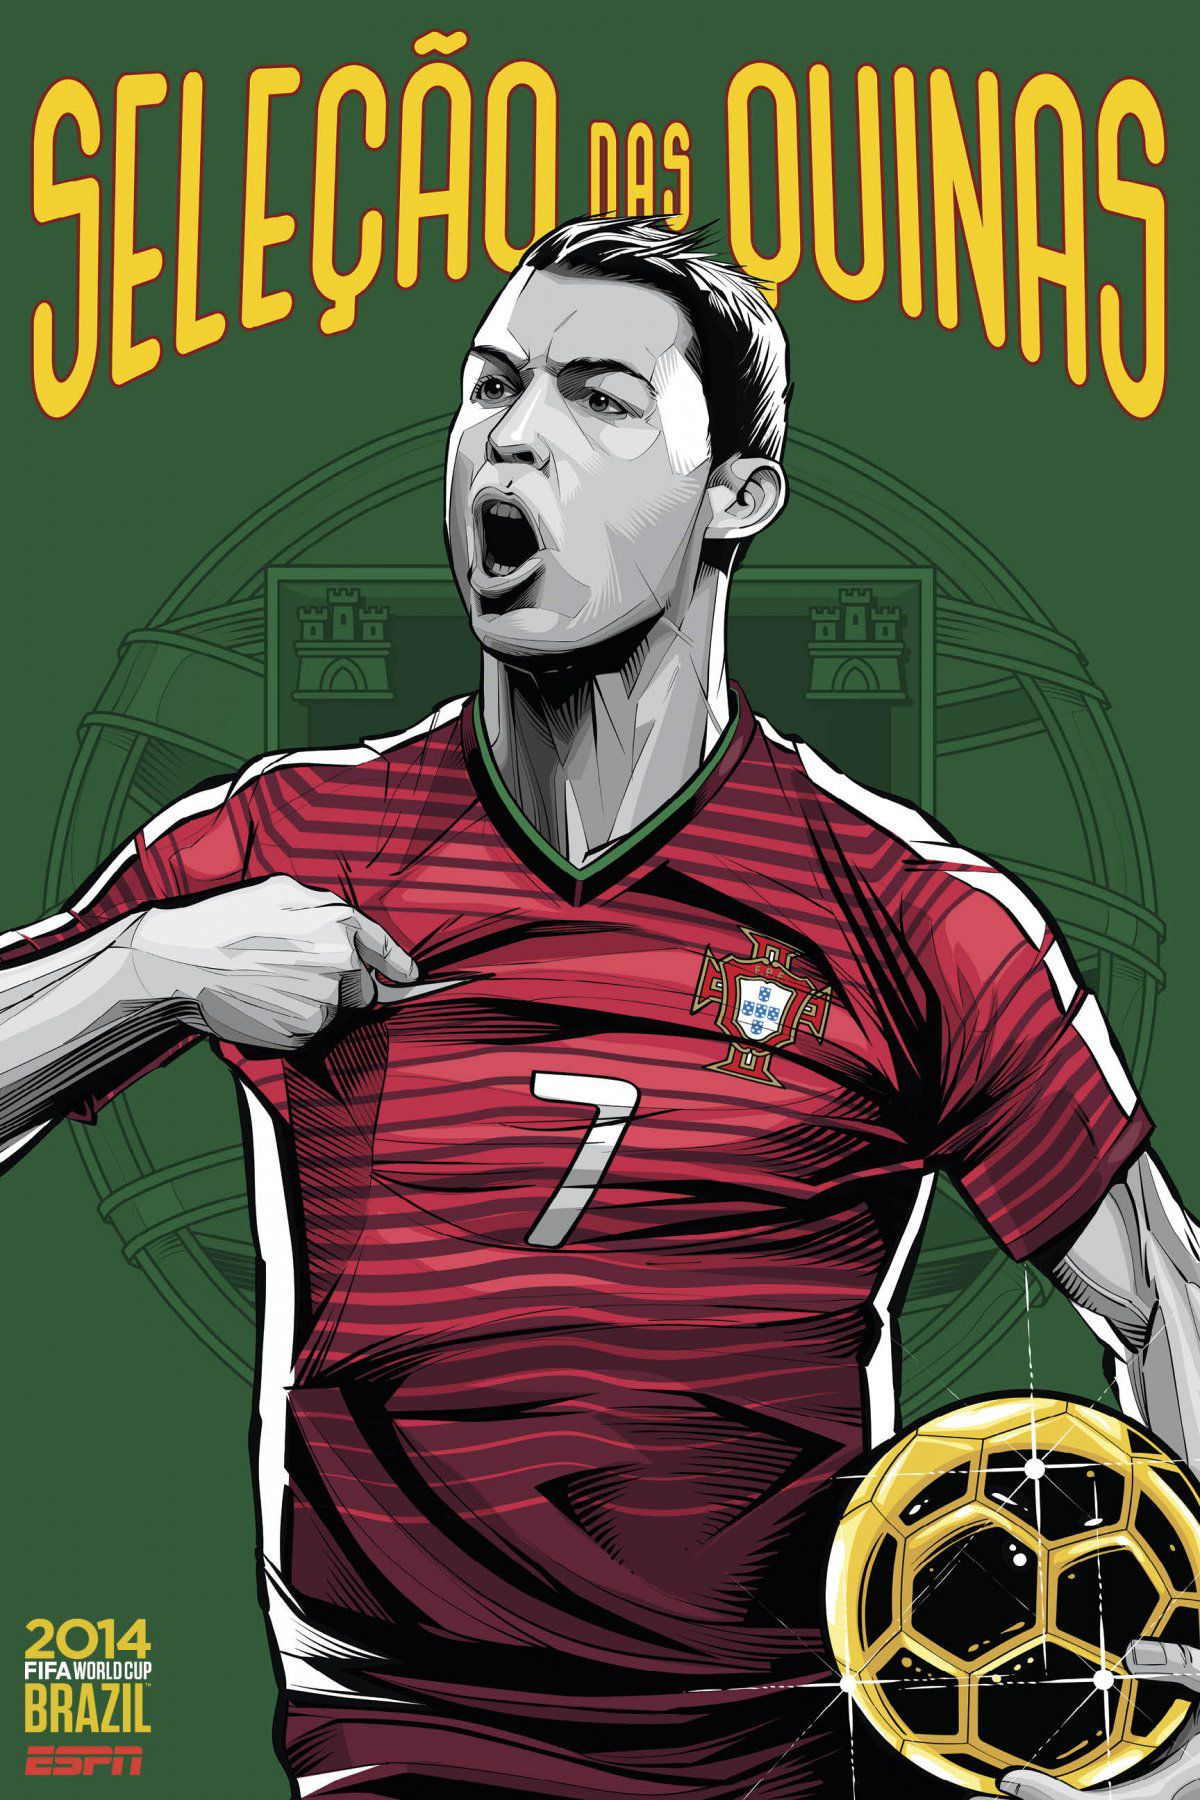 ESPN poster world cup brazil 2014 of Portugal